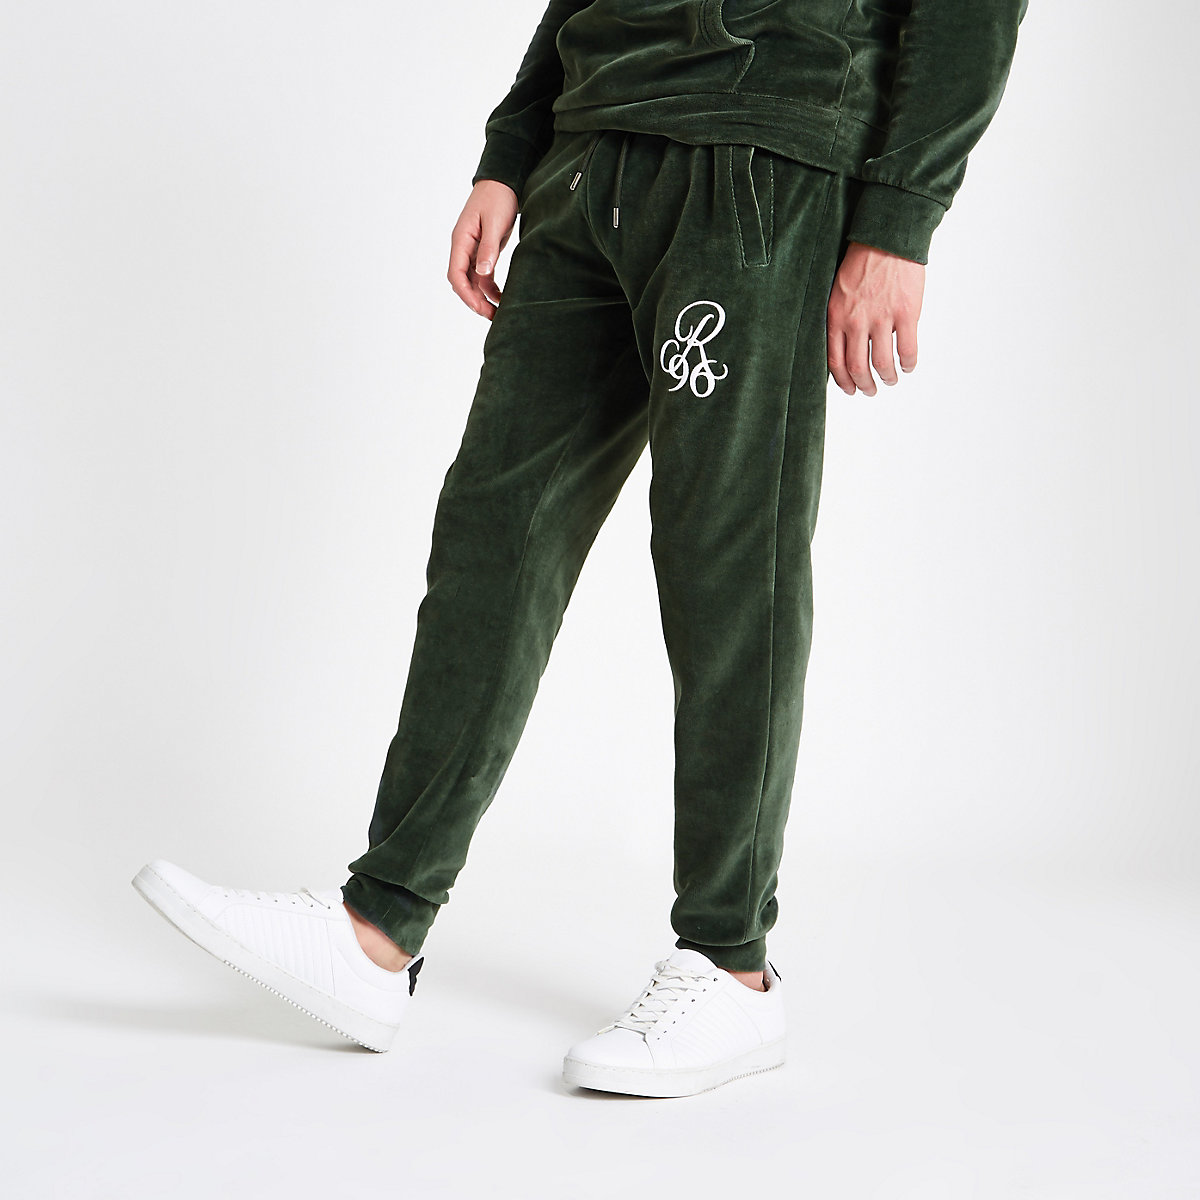 R96 green velour slim fit joggers